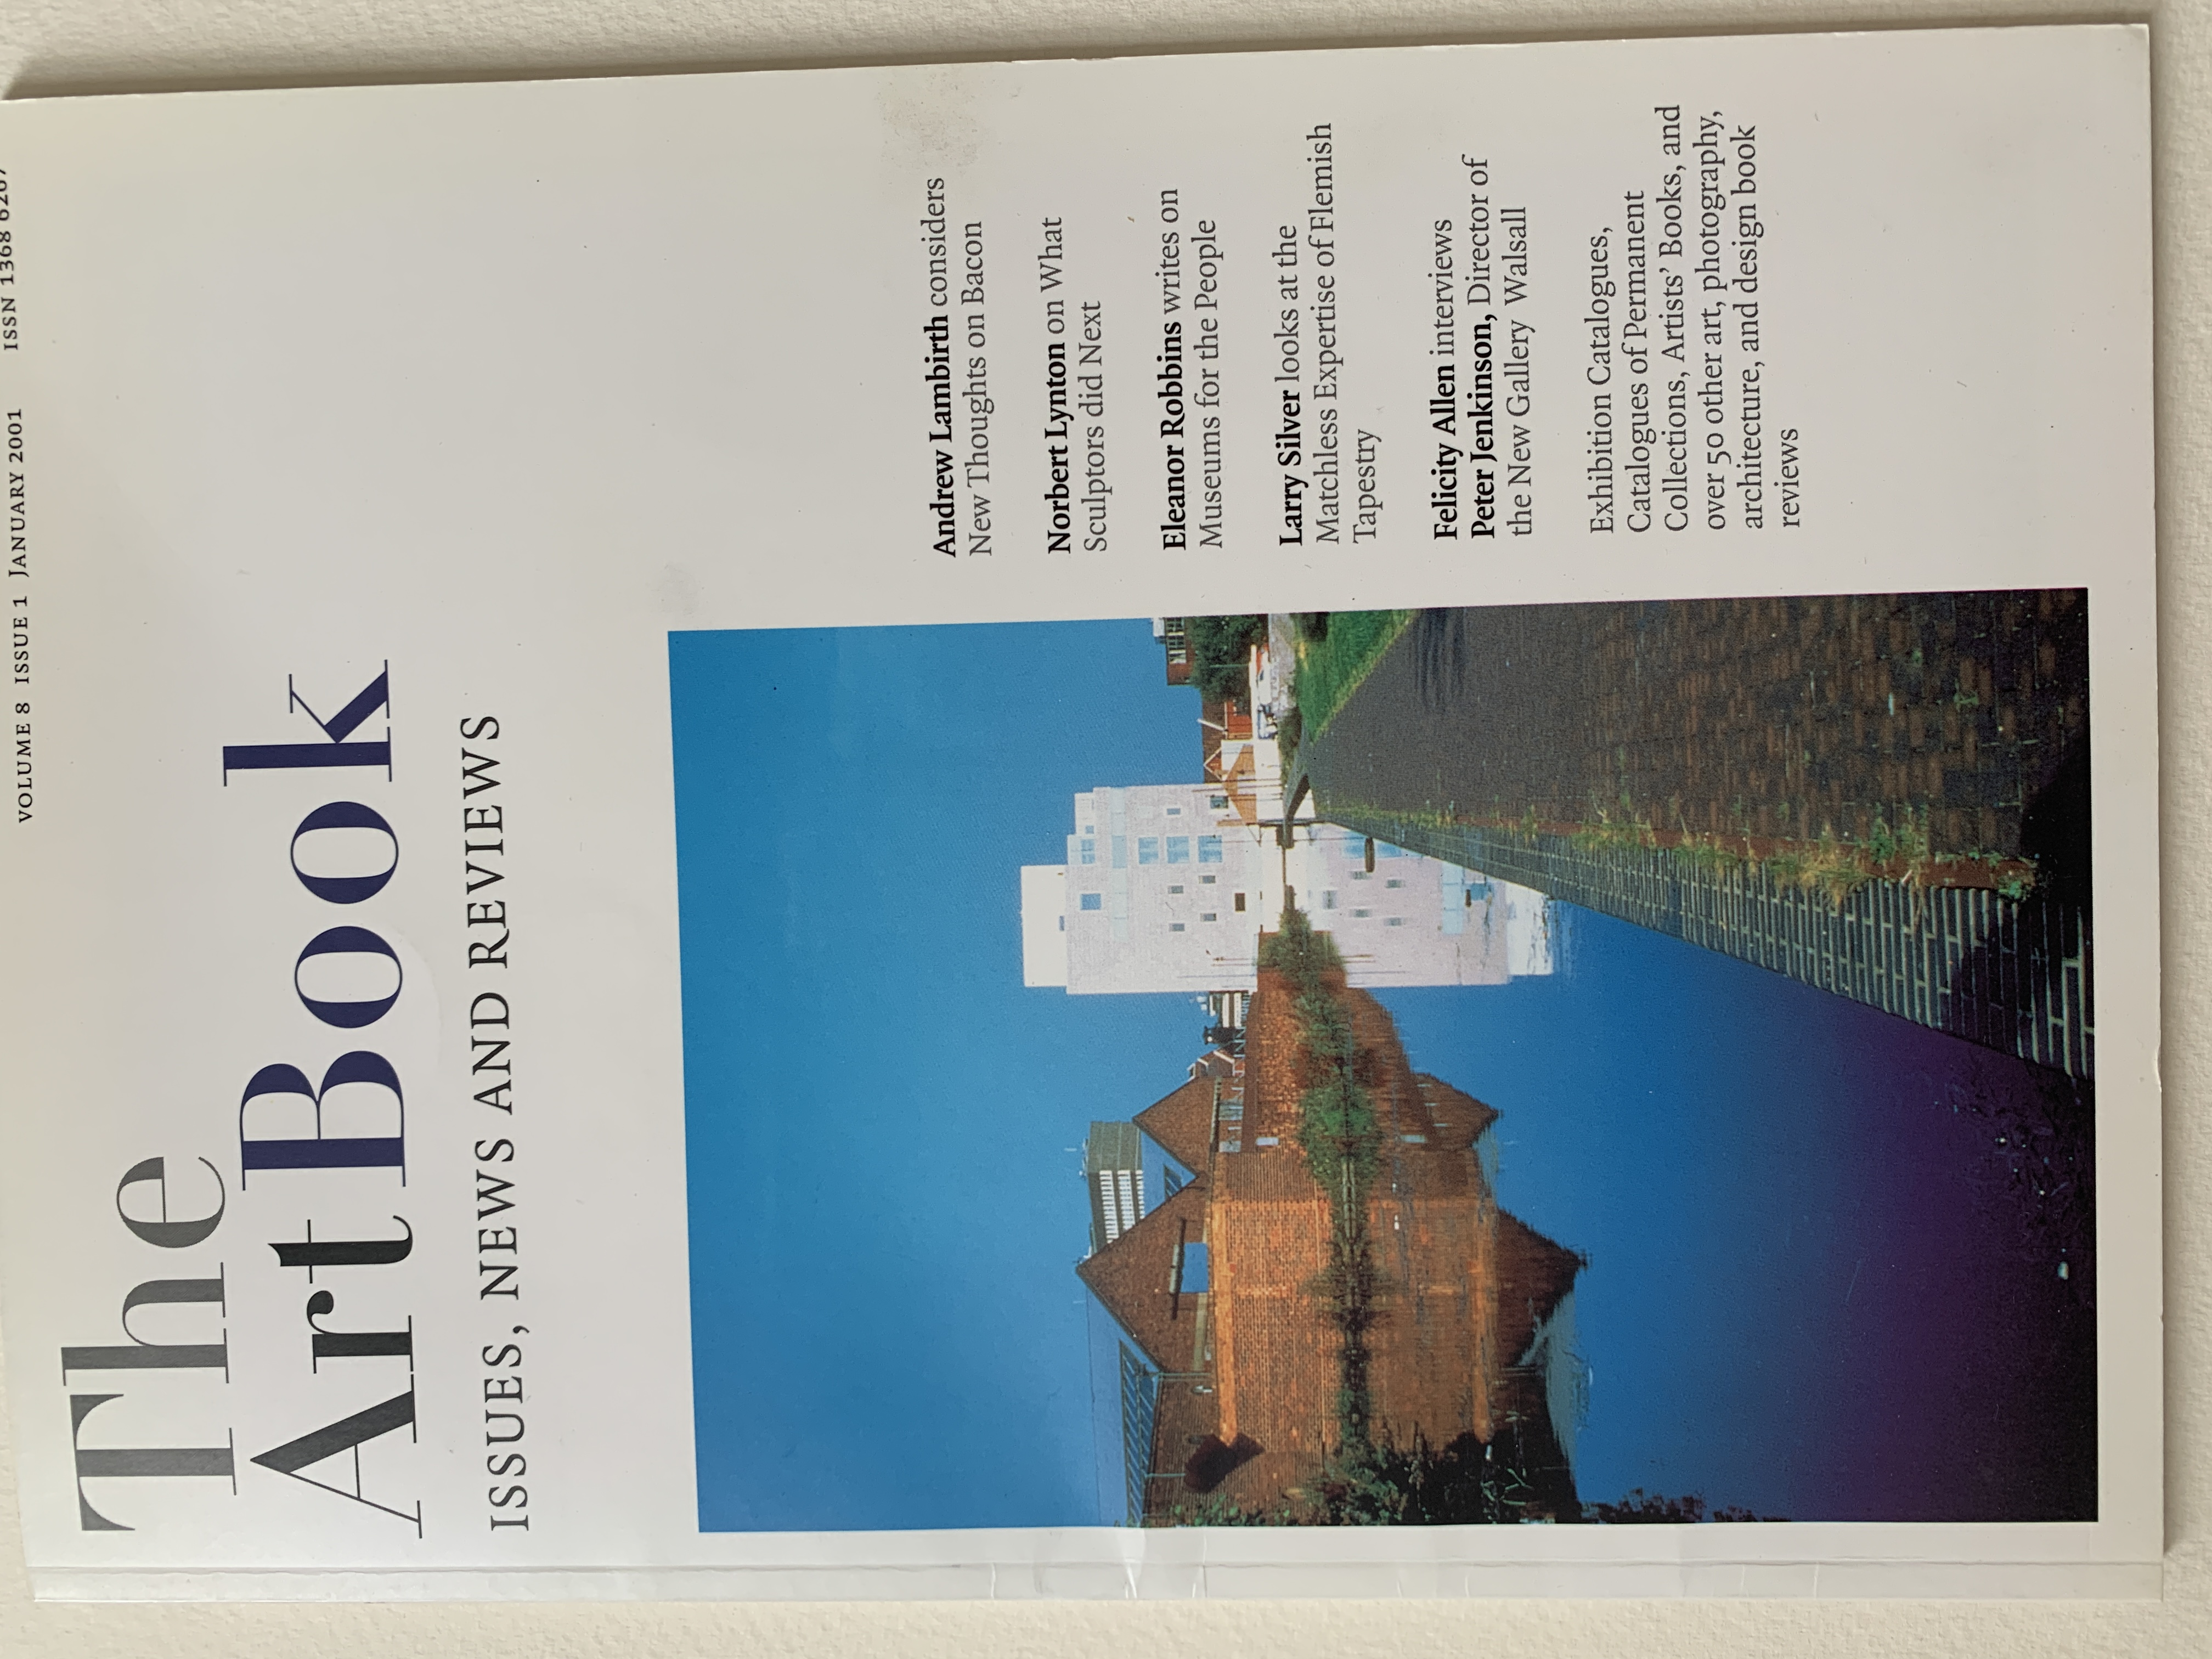 Interview With Peter Jenkinson At The New Art Gallery, Walsall, 2000, The Art Book (AAH)